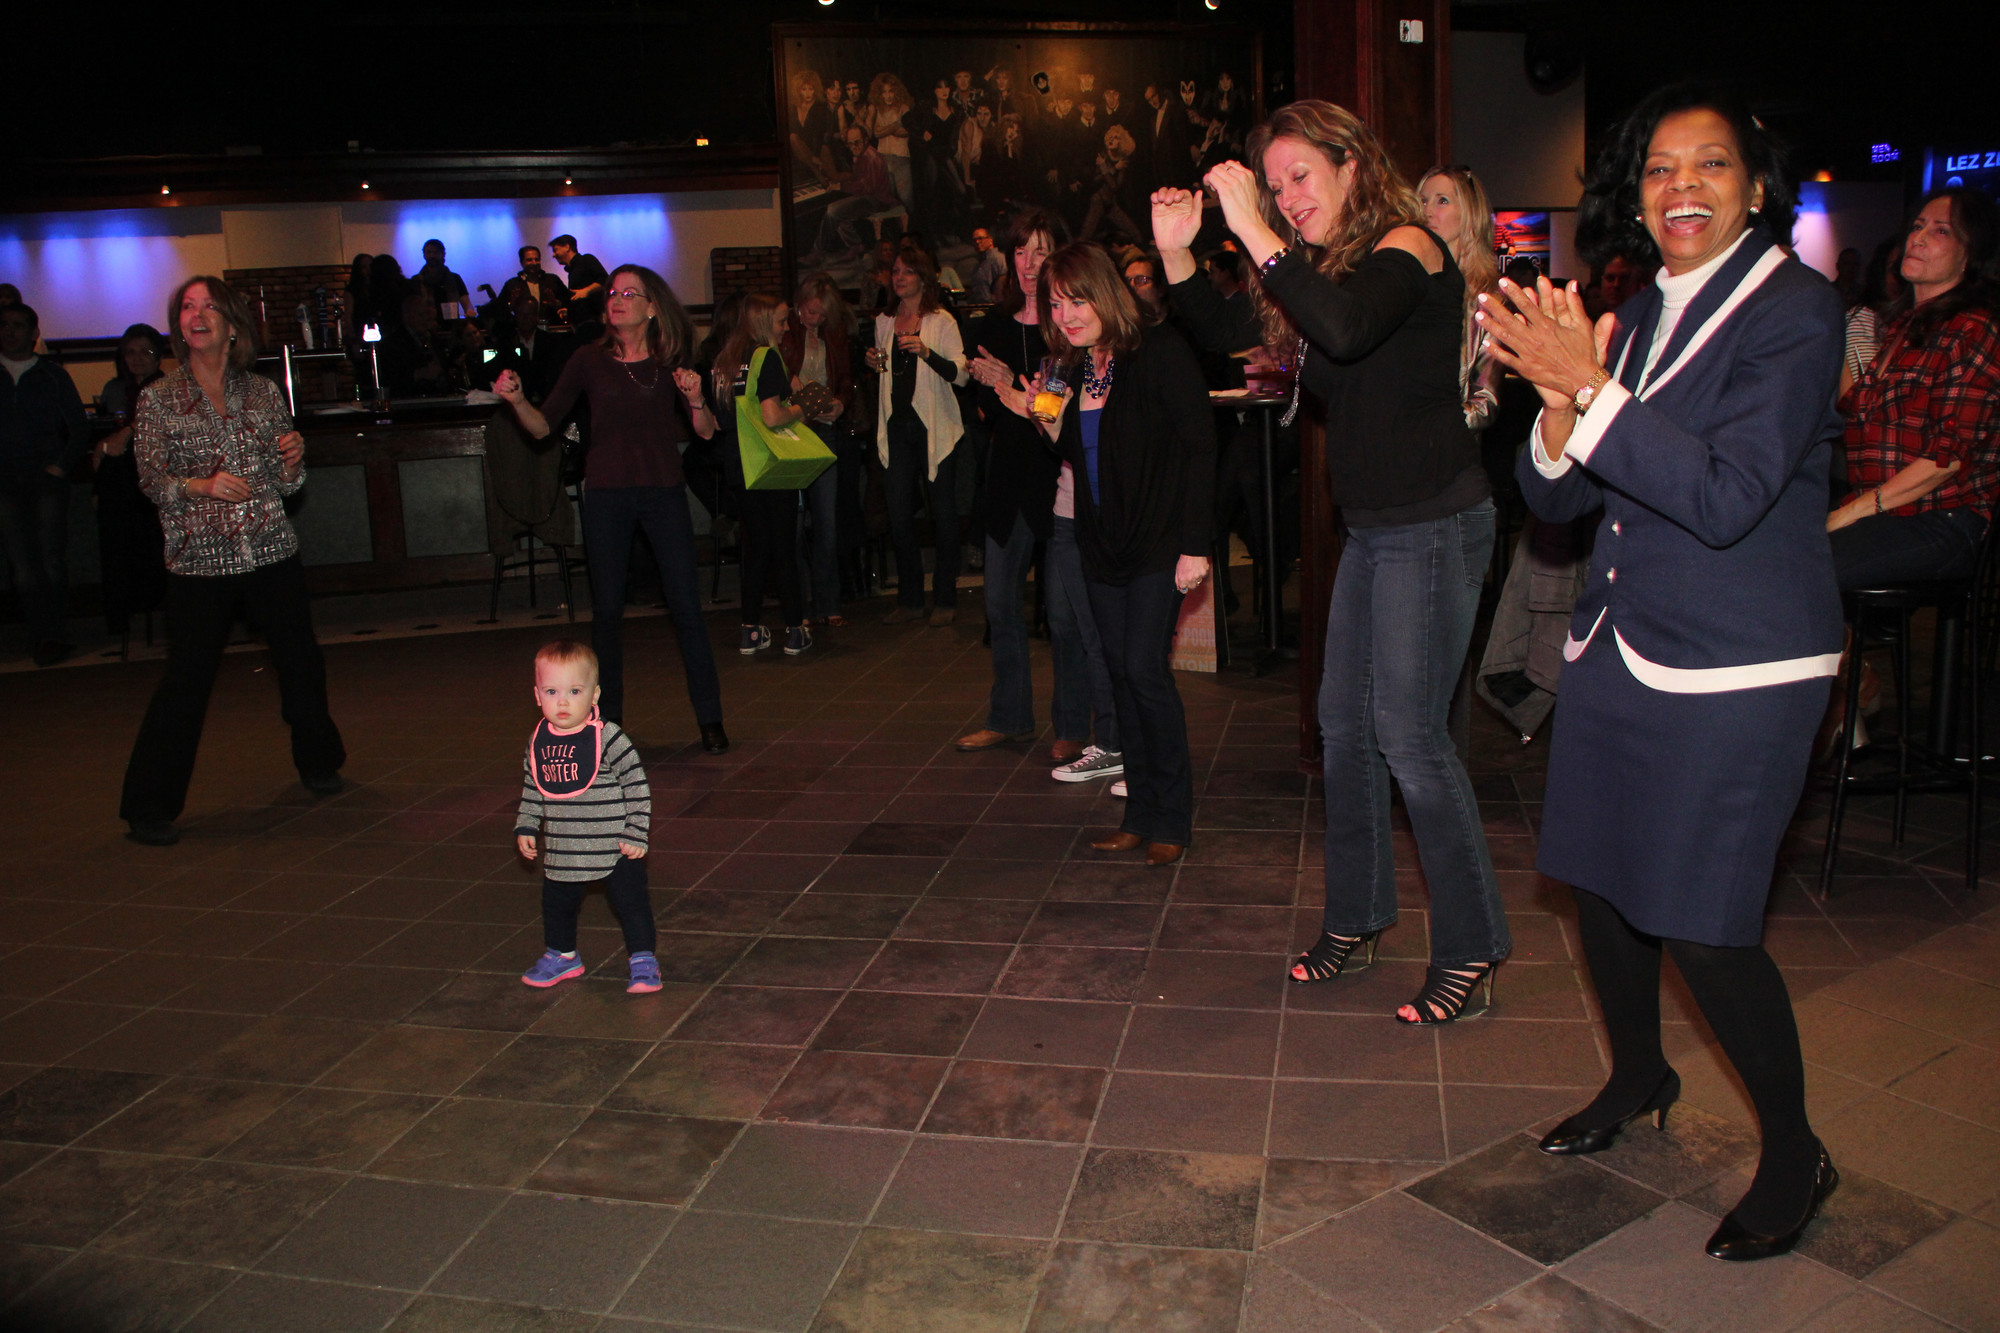 The dance floor was the place to be, even for little ones.